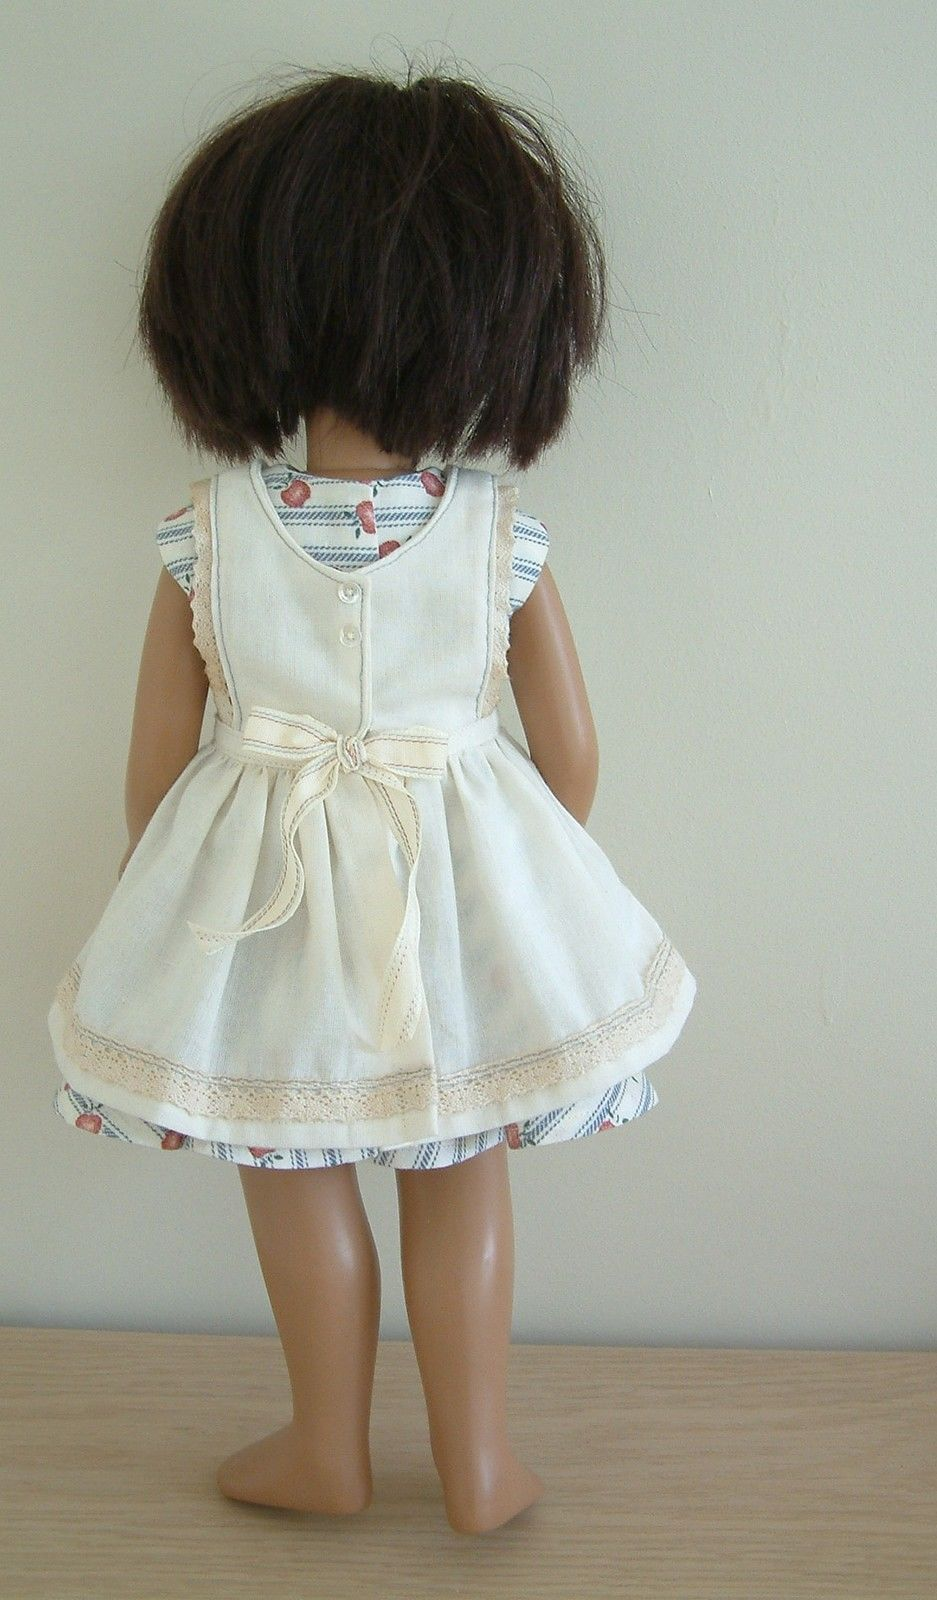 White pinafore apron ebay - Dress And Pinafore Apron For 17 Inch Sasha Doll In Ebay